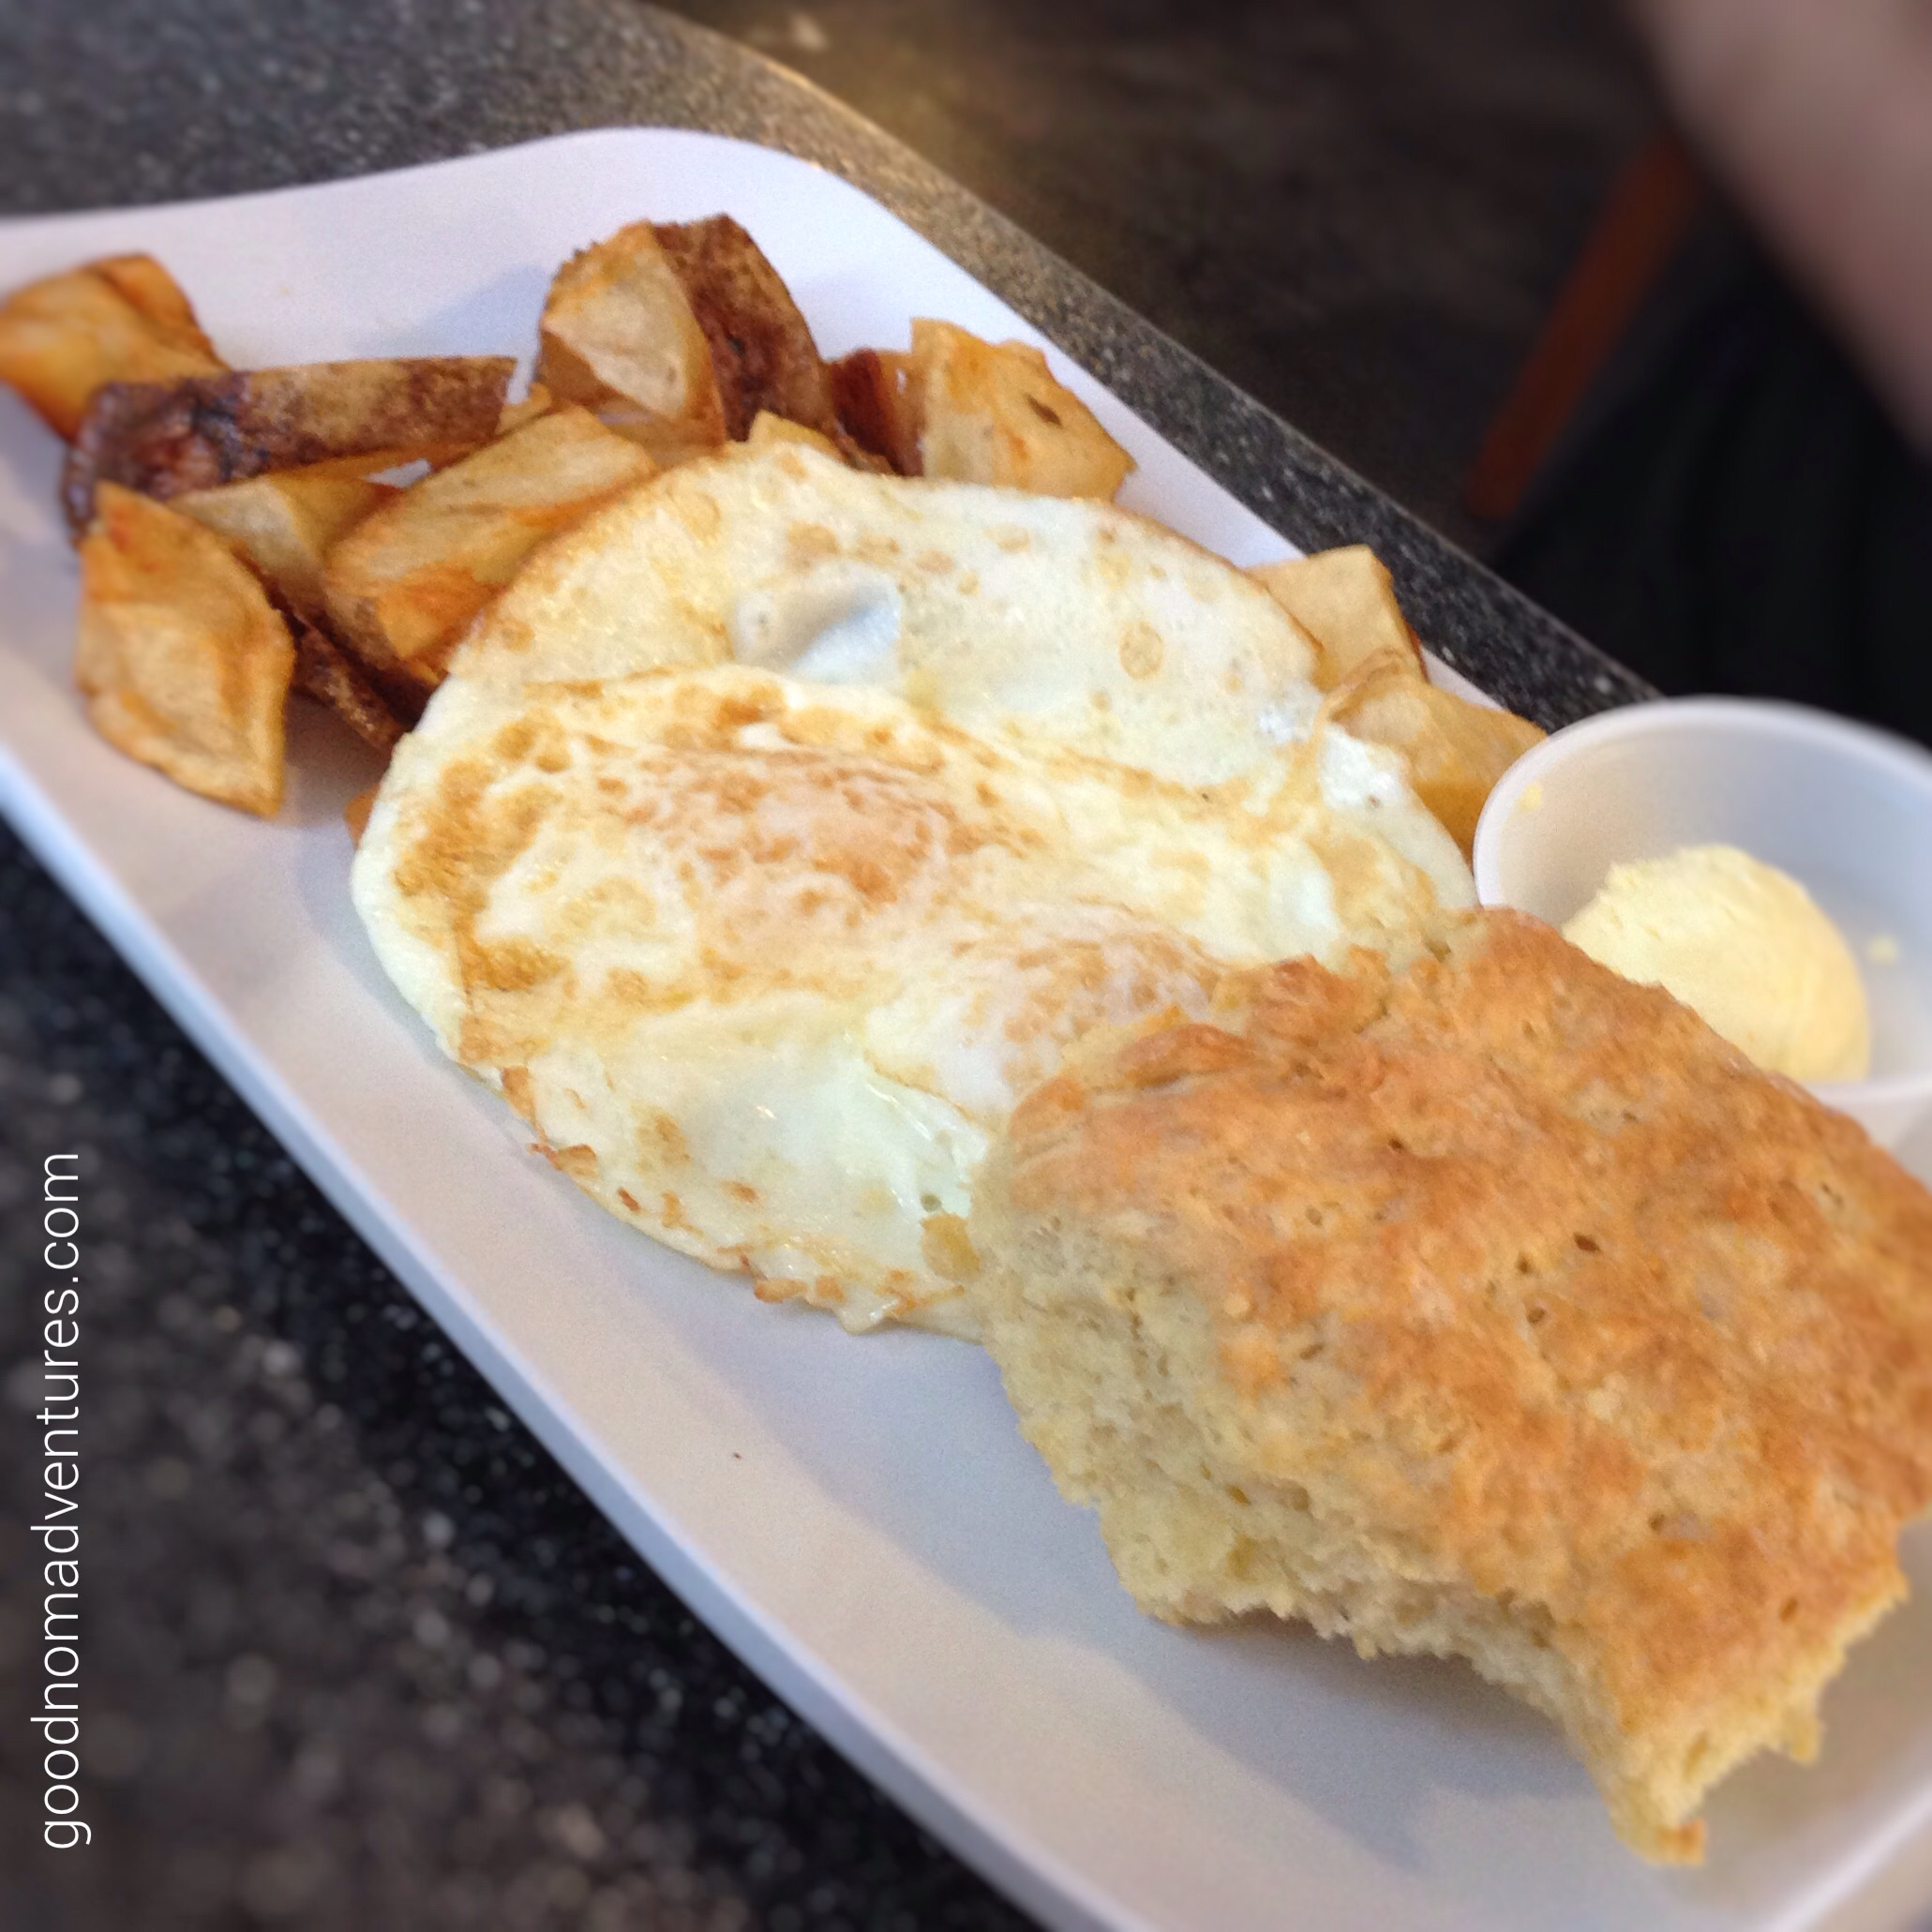 Home fries, eggs and biscuit